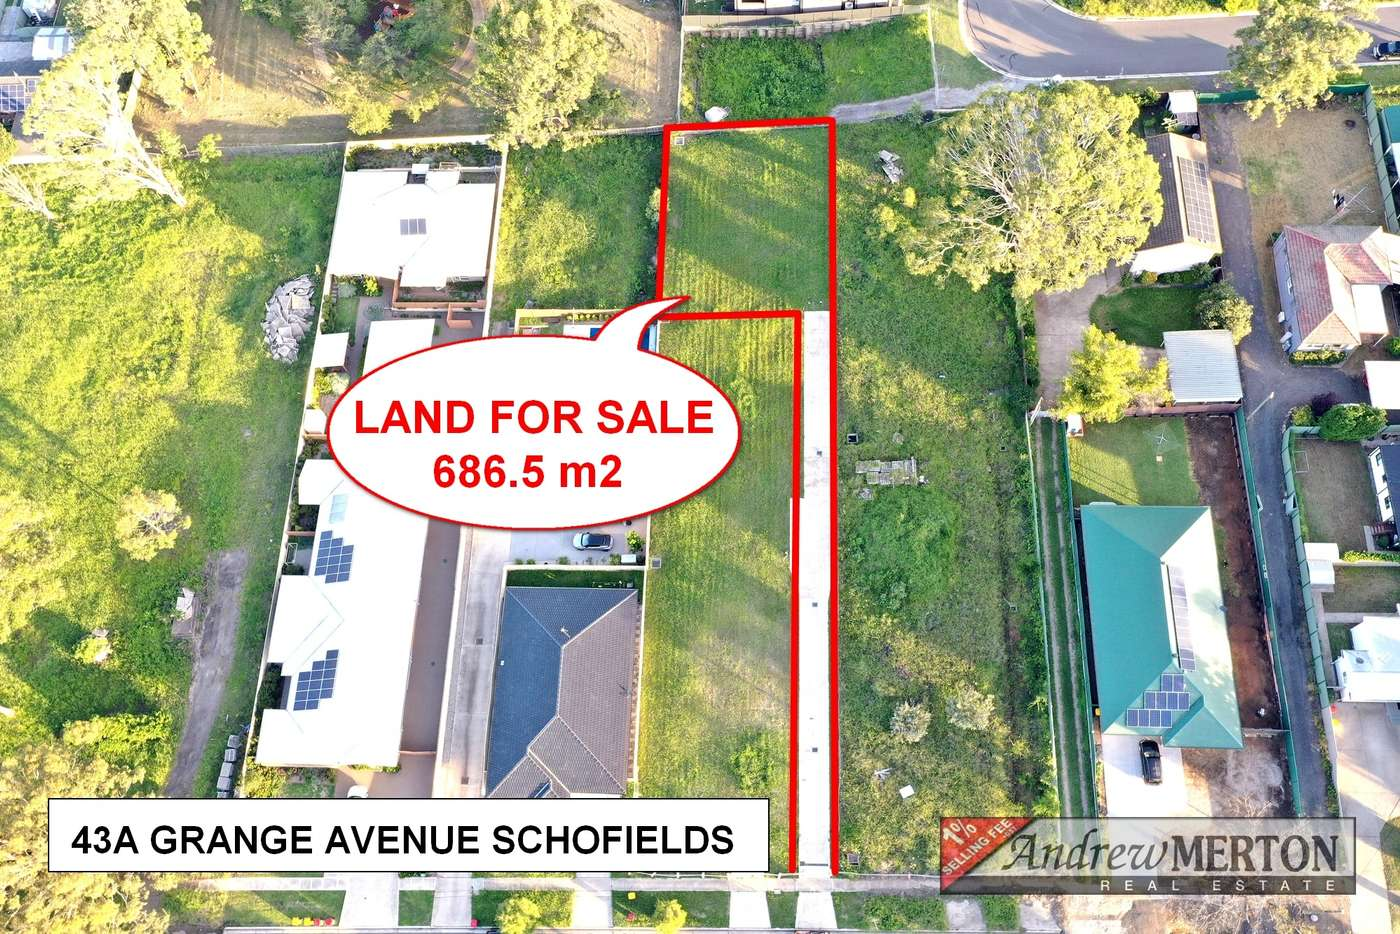 Main view of Homely residentialLand listing, 43A Grange Ave, Schofields NSW 2762